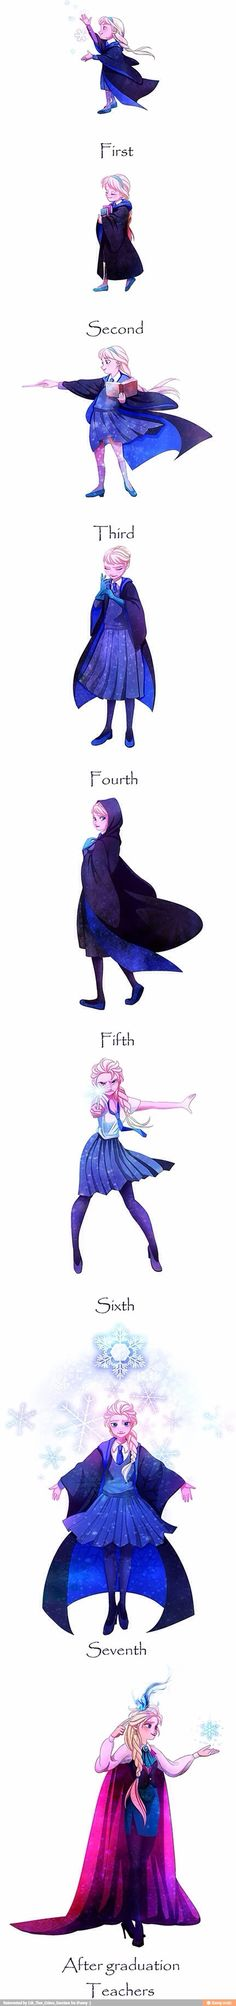 "I like the concept, but I can't get over how her skirt keeps on getting shorter! Elsa was pretty freaking modest except for the slit in her ""Let it Go"" dress"